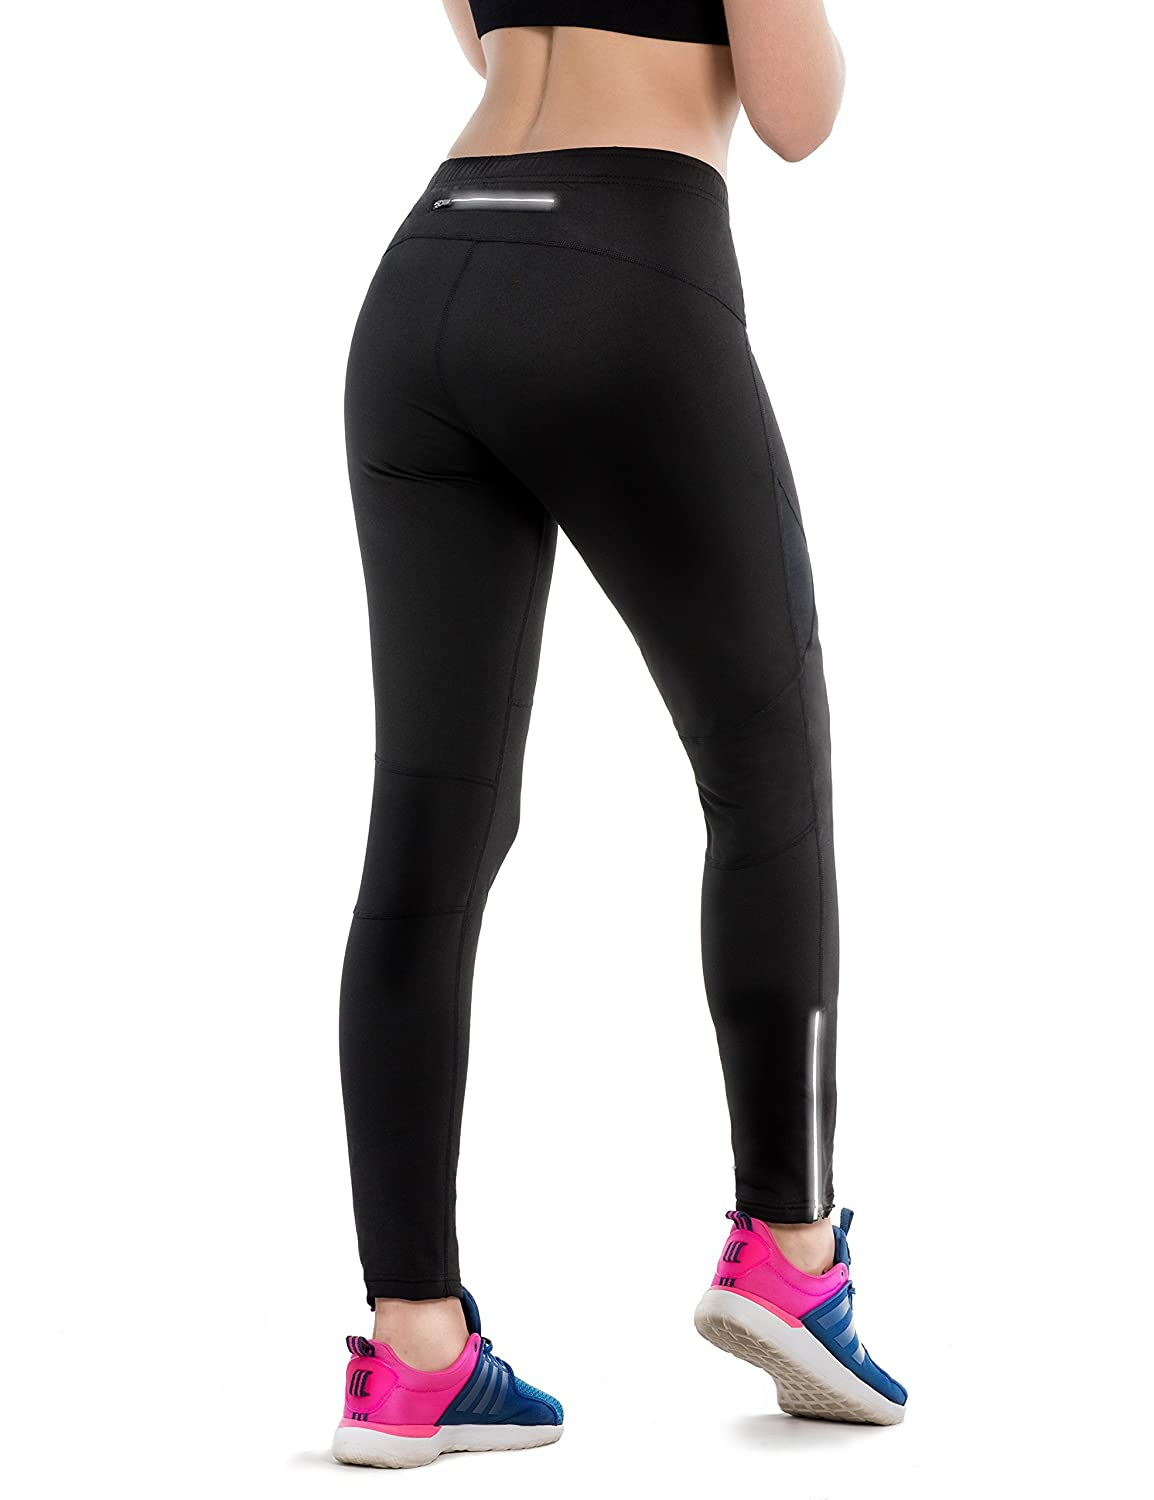 Safort Woman Windproof Cycling Jogging Pants for Spring/Autumn, Not Padded, Thermal, Fleece Lined, Zip Pocket, Black M SQX1710082